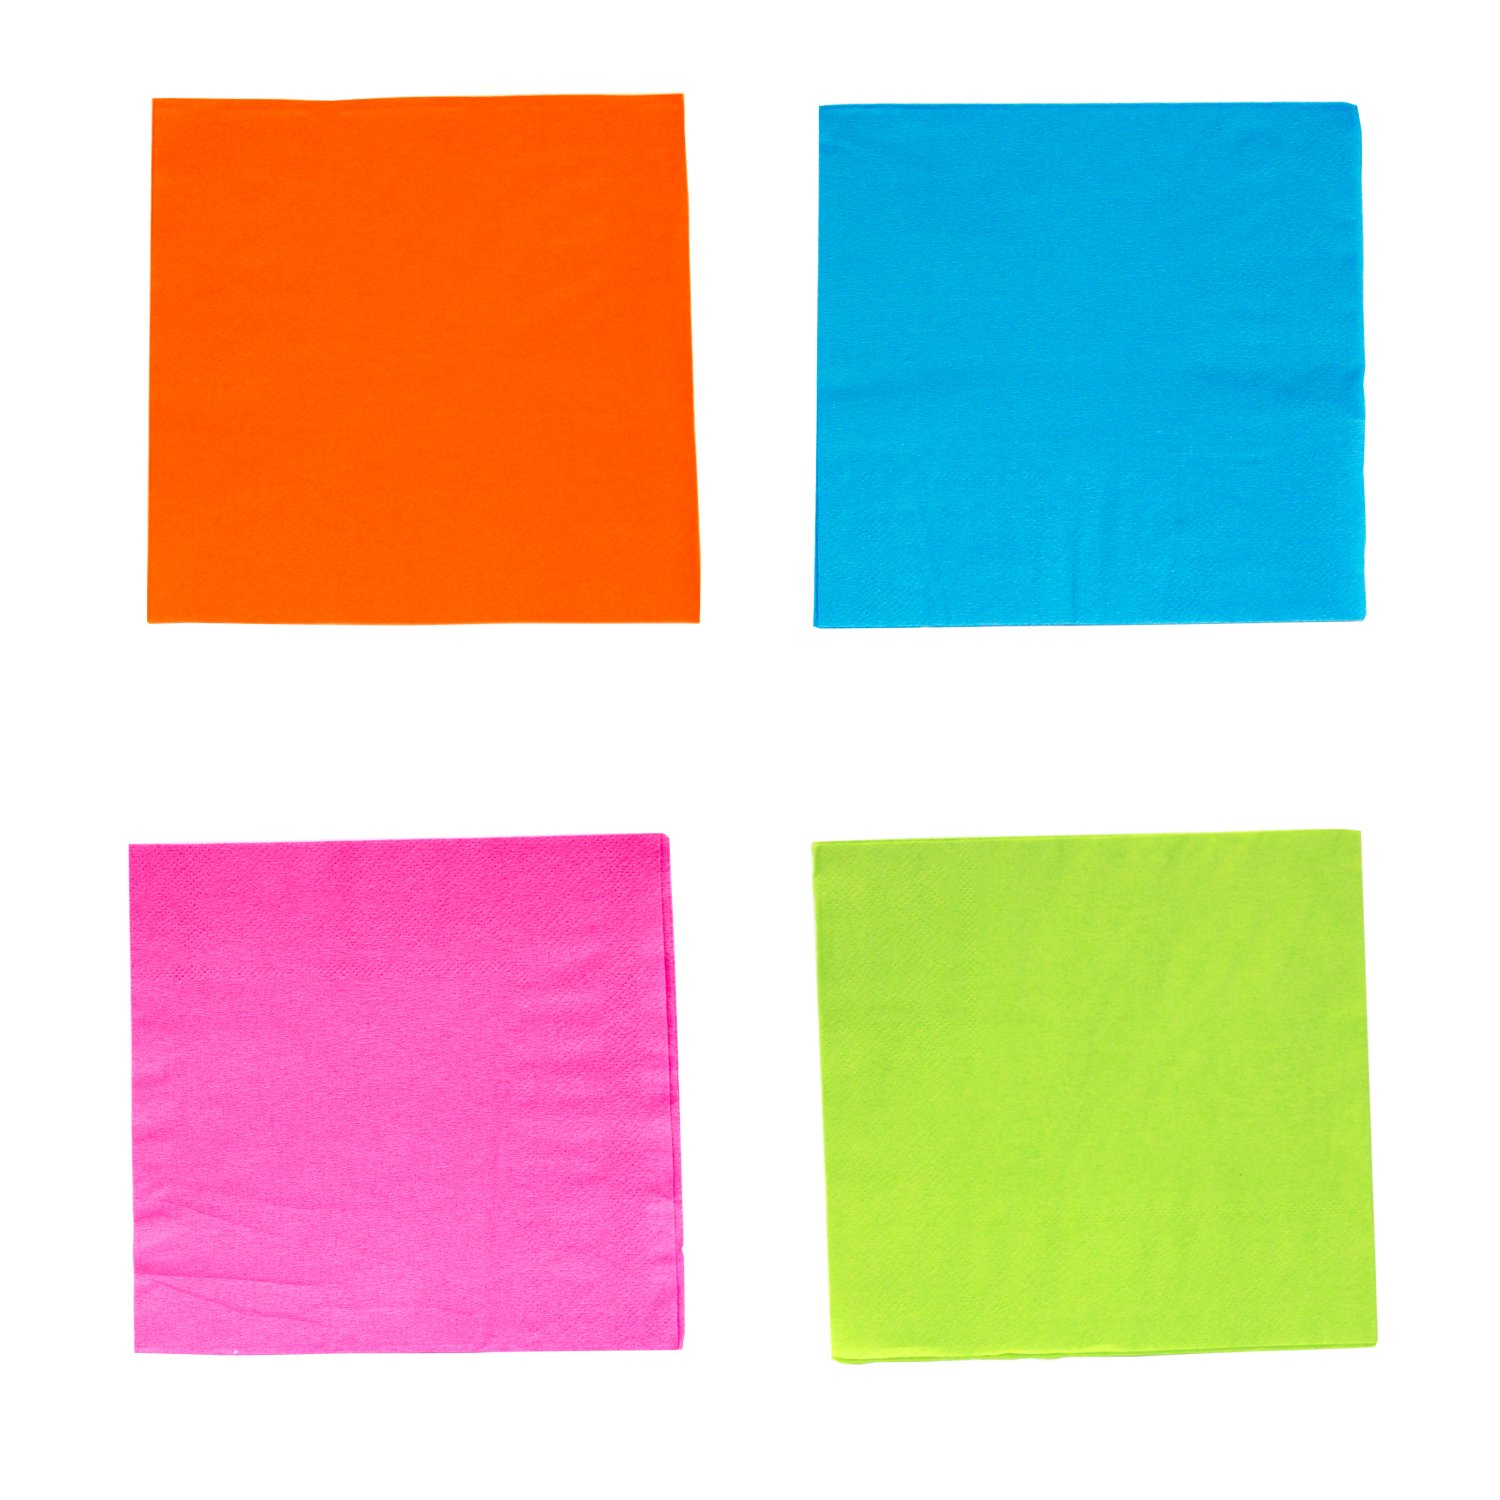 Party Essentials 2-Ply Paper Cocktail Beverage Napkins, Assorted Neon Brights, 48-Count by Party Essentials (Image #4)